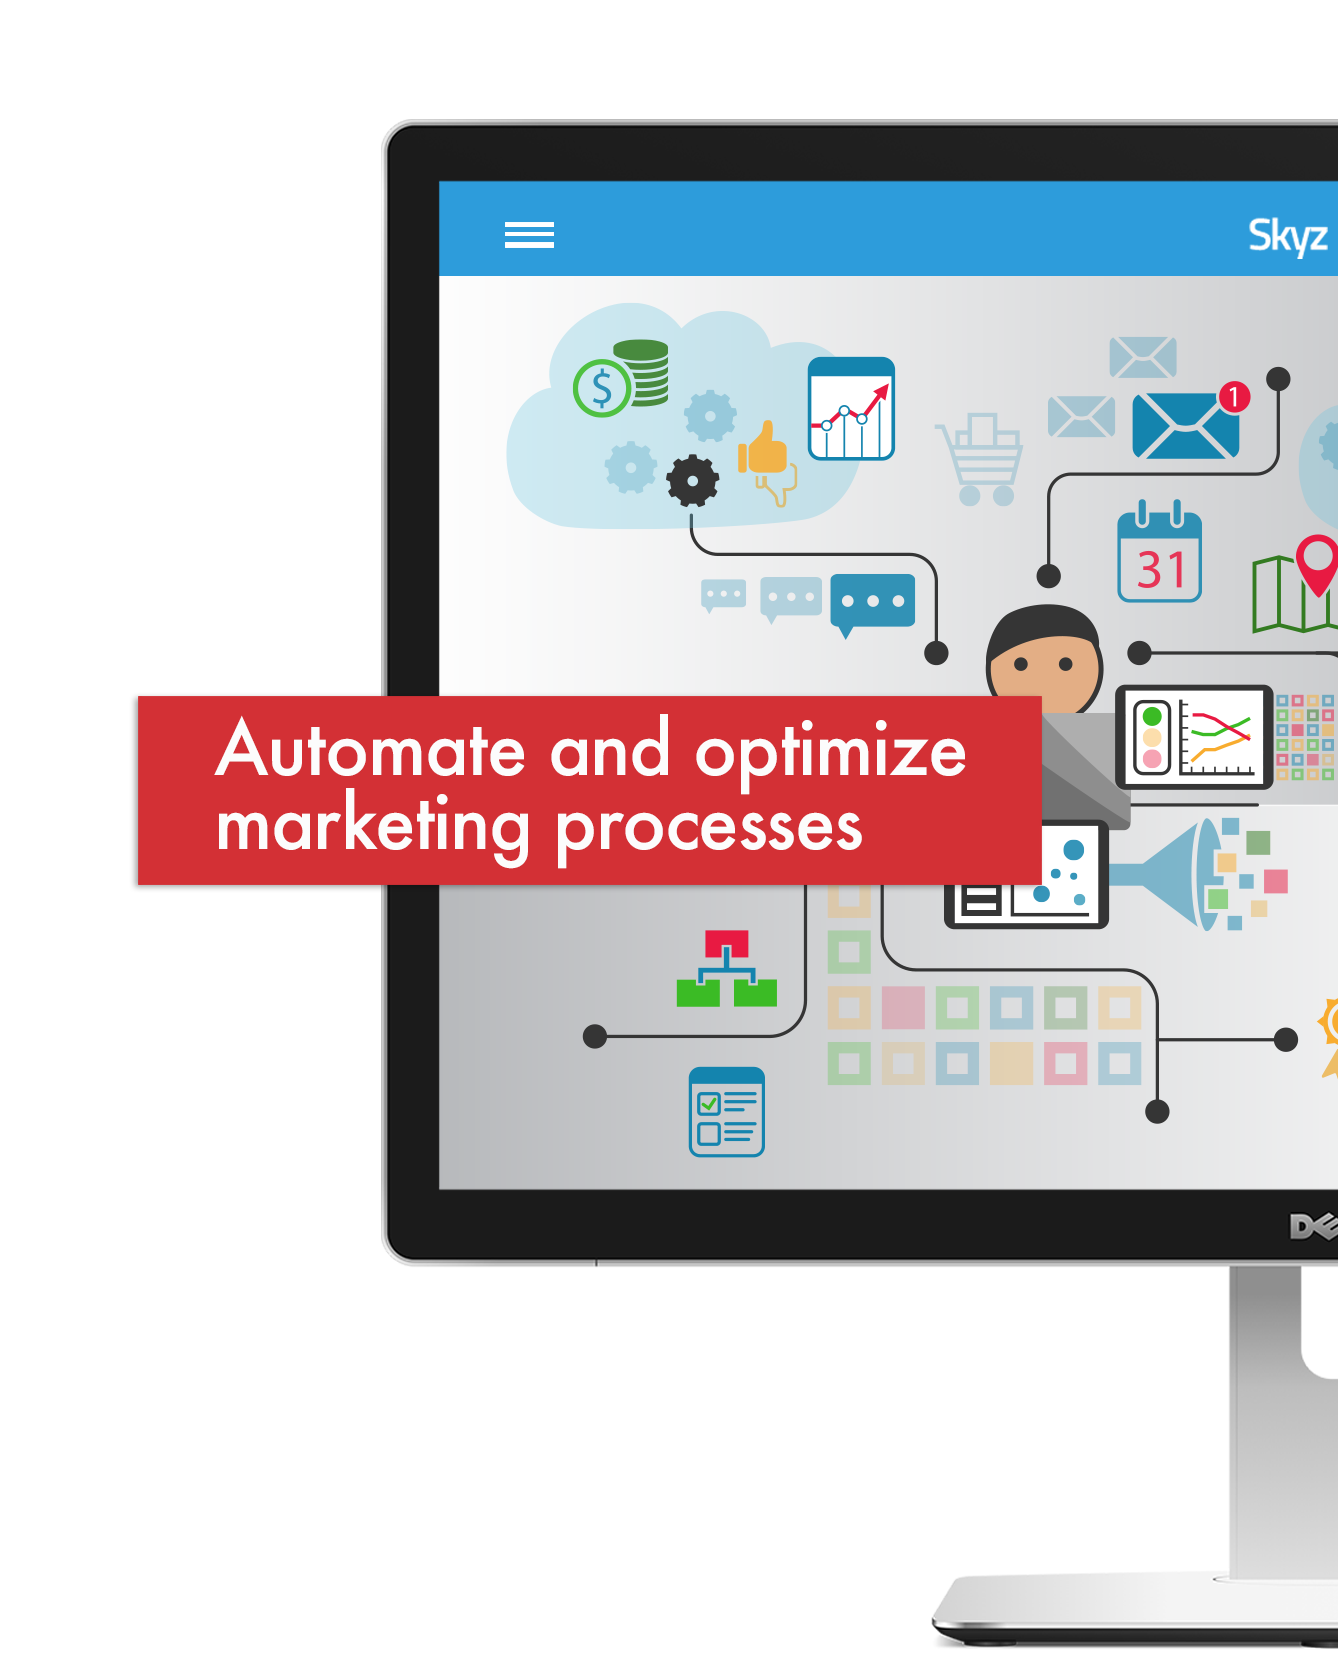 Marketing automation with Skyz CRM